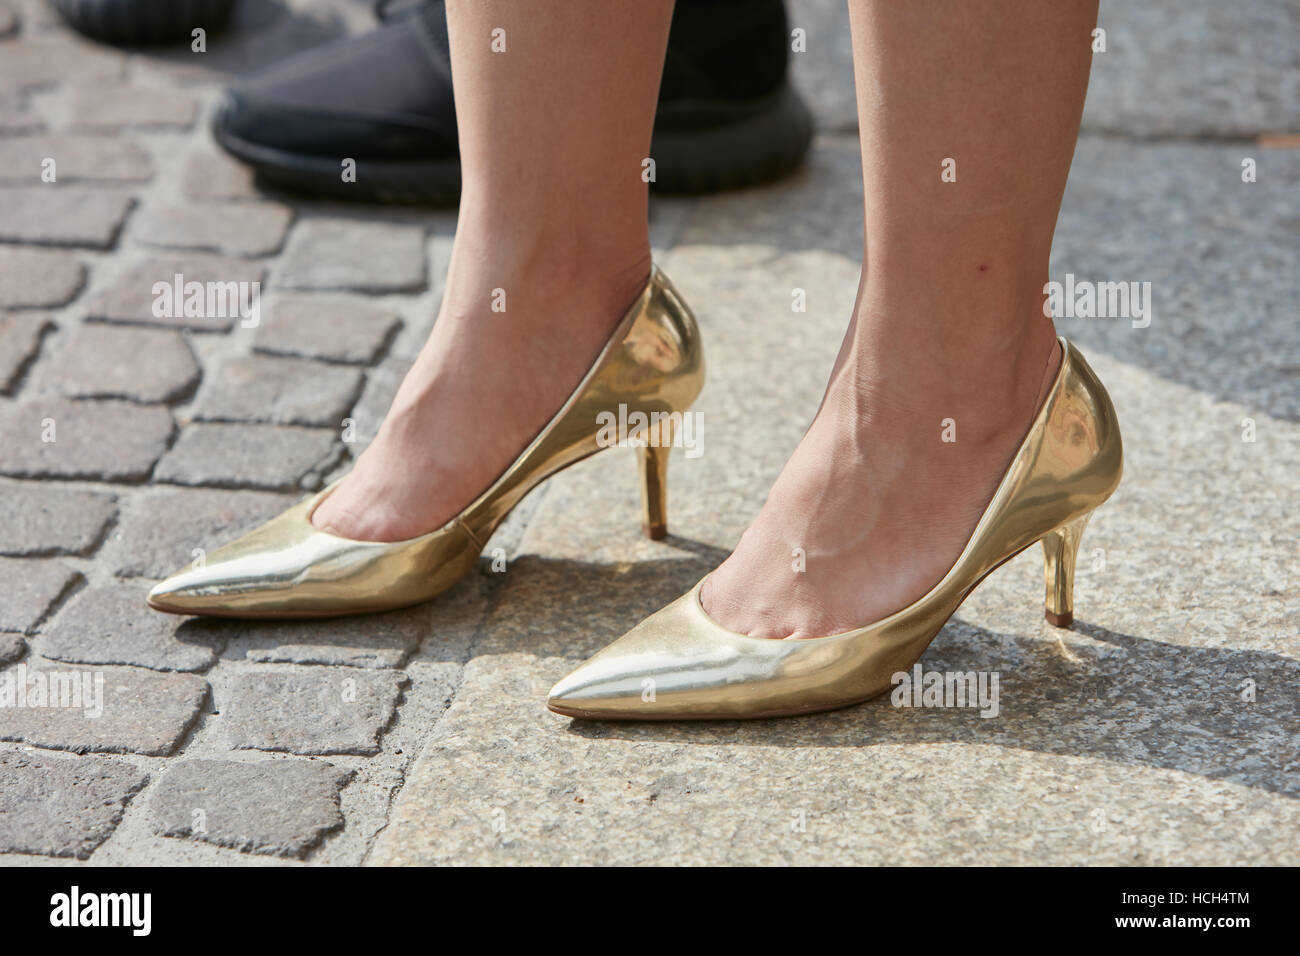 6f28e4aa2d3 Stylish Gold Shoes Stock Photos   Stylish Gold Shoes Stock Images ...